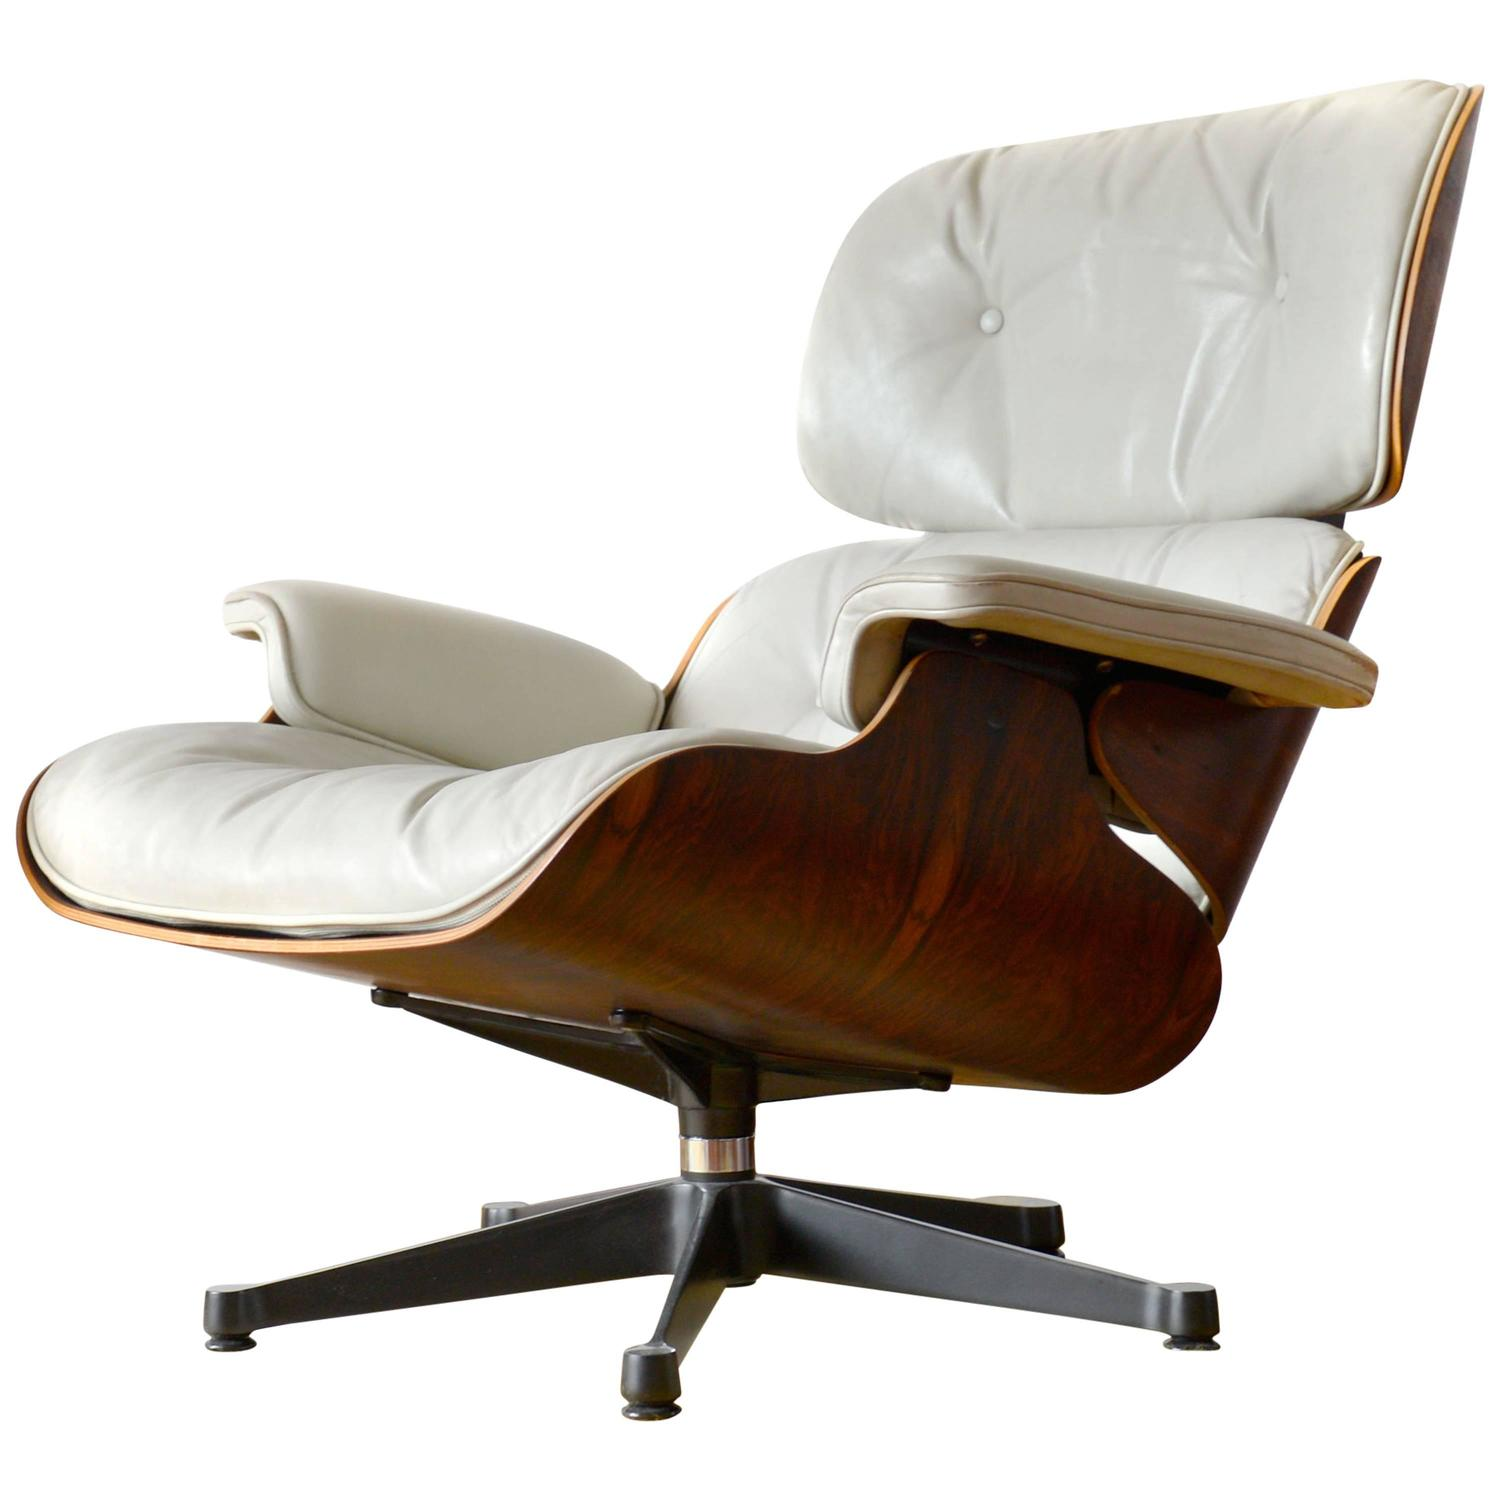 Phenomenal White Leather Lounge Chair Charles Eames Machost Co Dining Chair Design Ideas Machostcouk